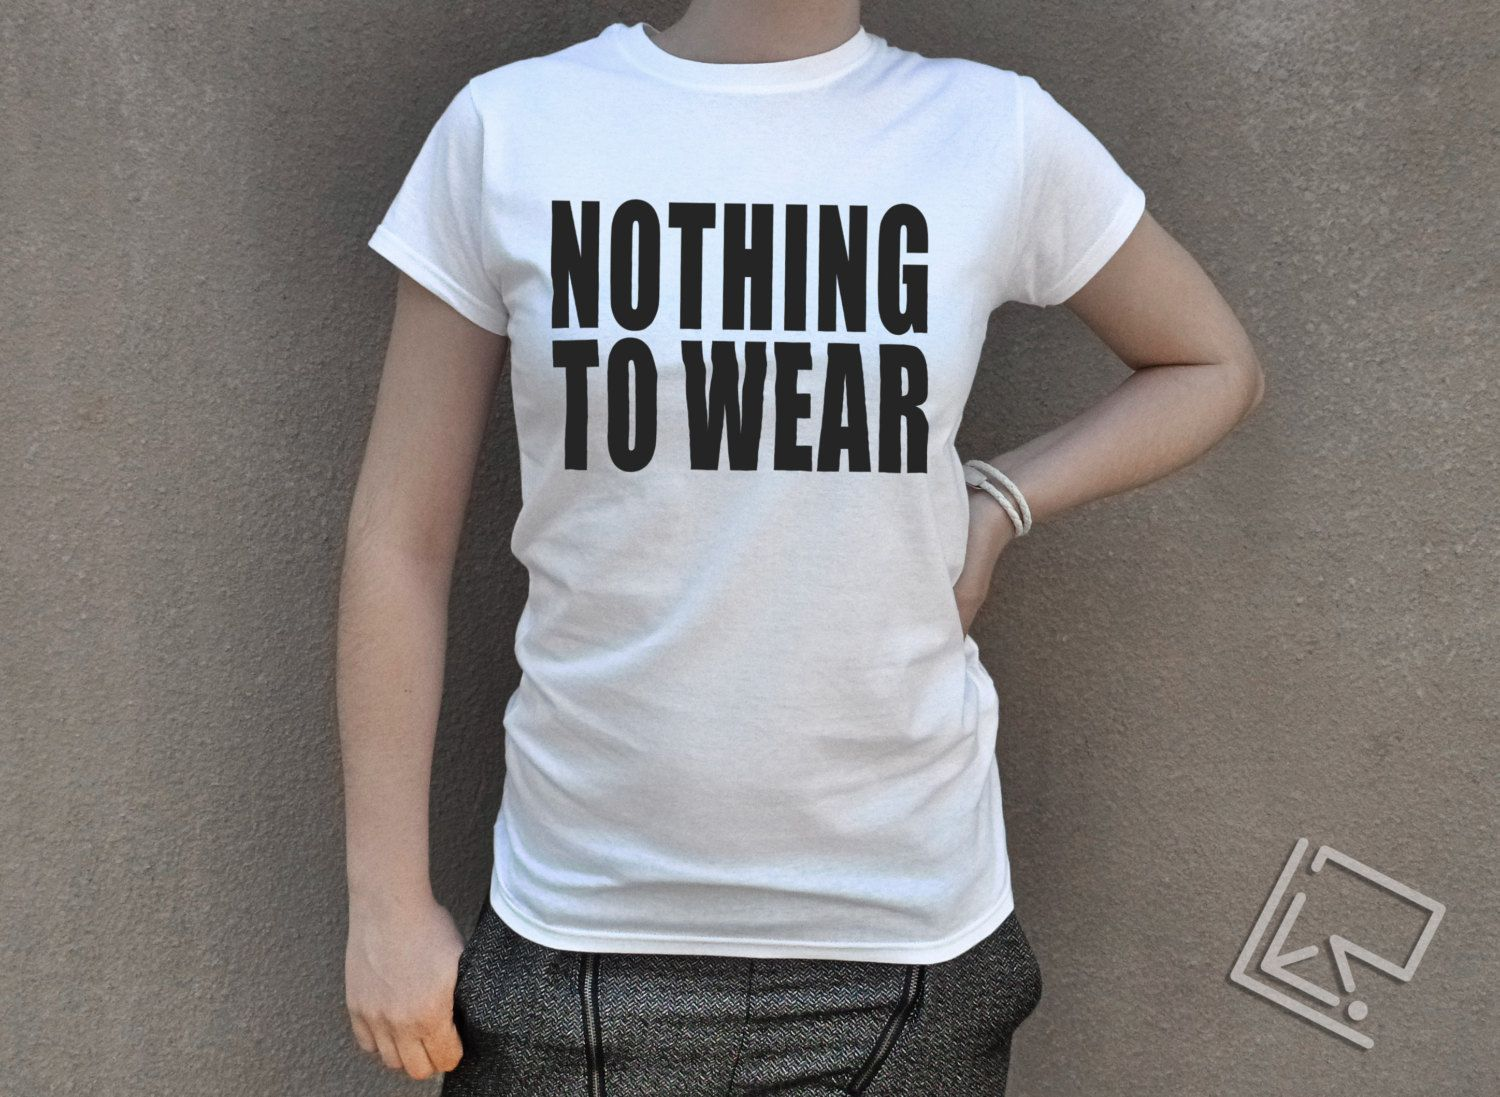 Womens slogan NOTHING TO WEAR t shirt. Last clean t shirt. Teenager t shirt. Gift for student. Gift for girlfriend. Gift for wife, sister. by Crafteri on Etsy